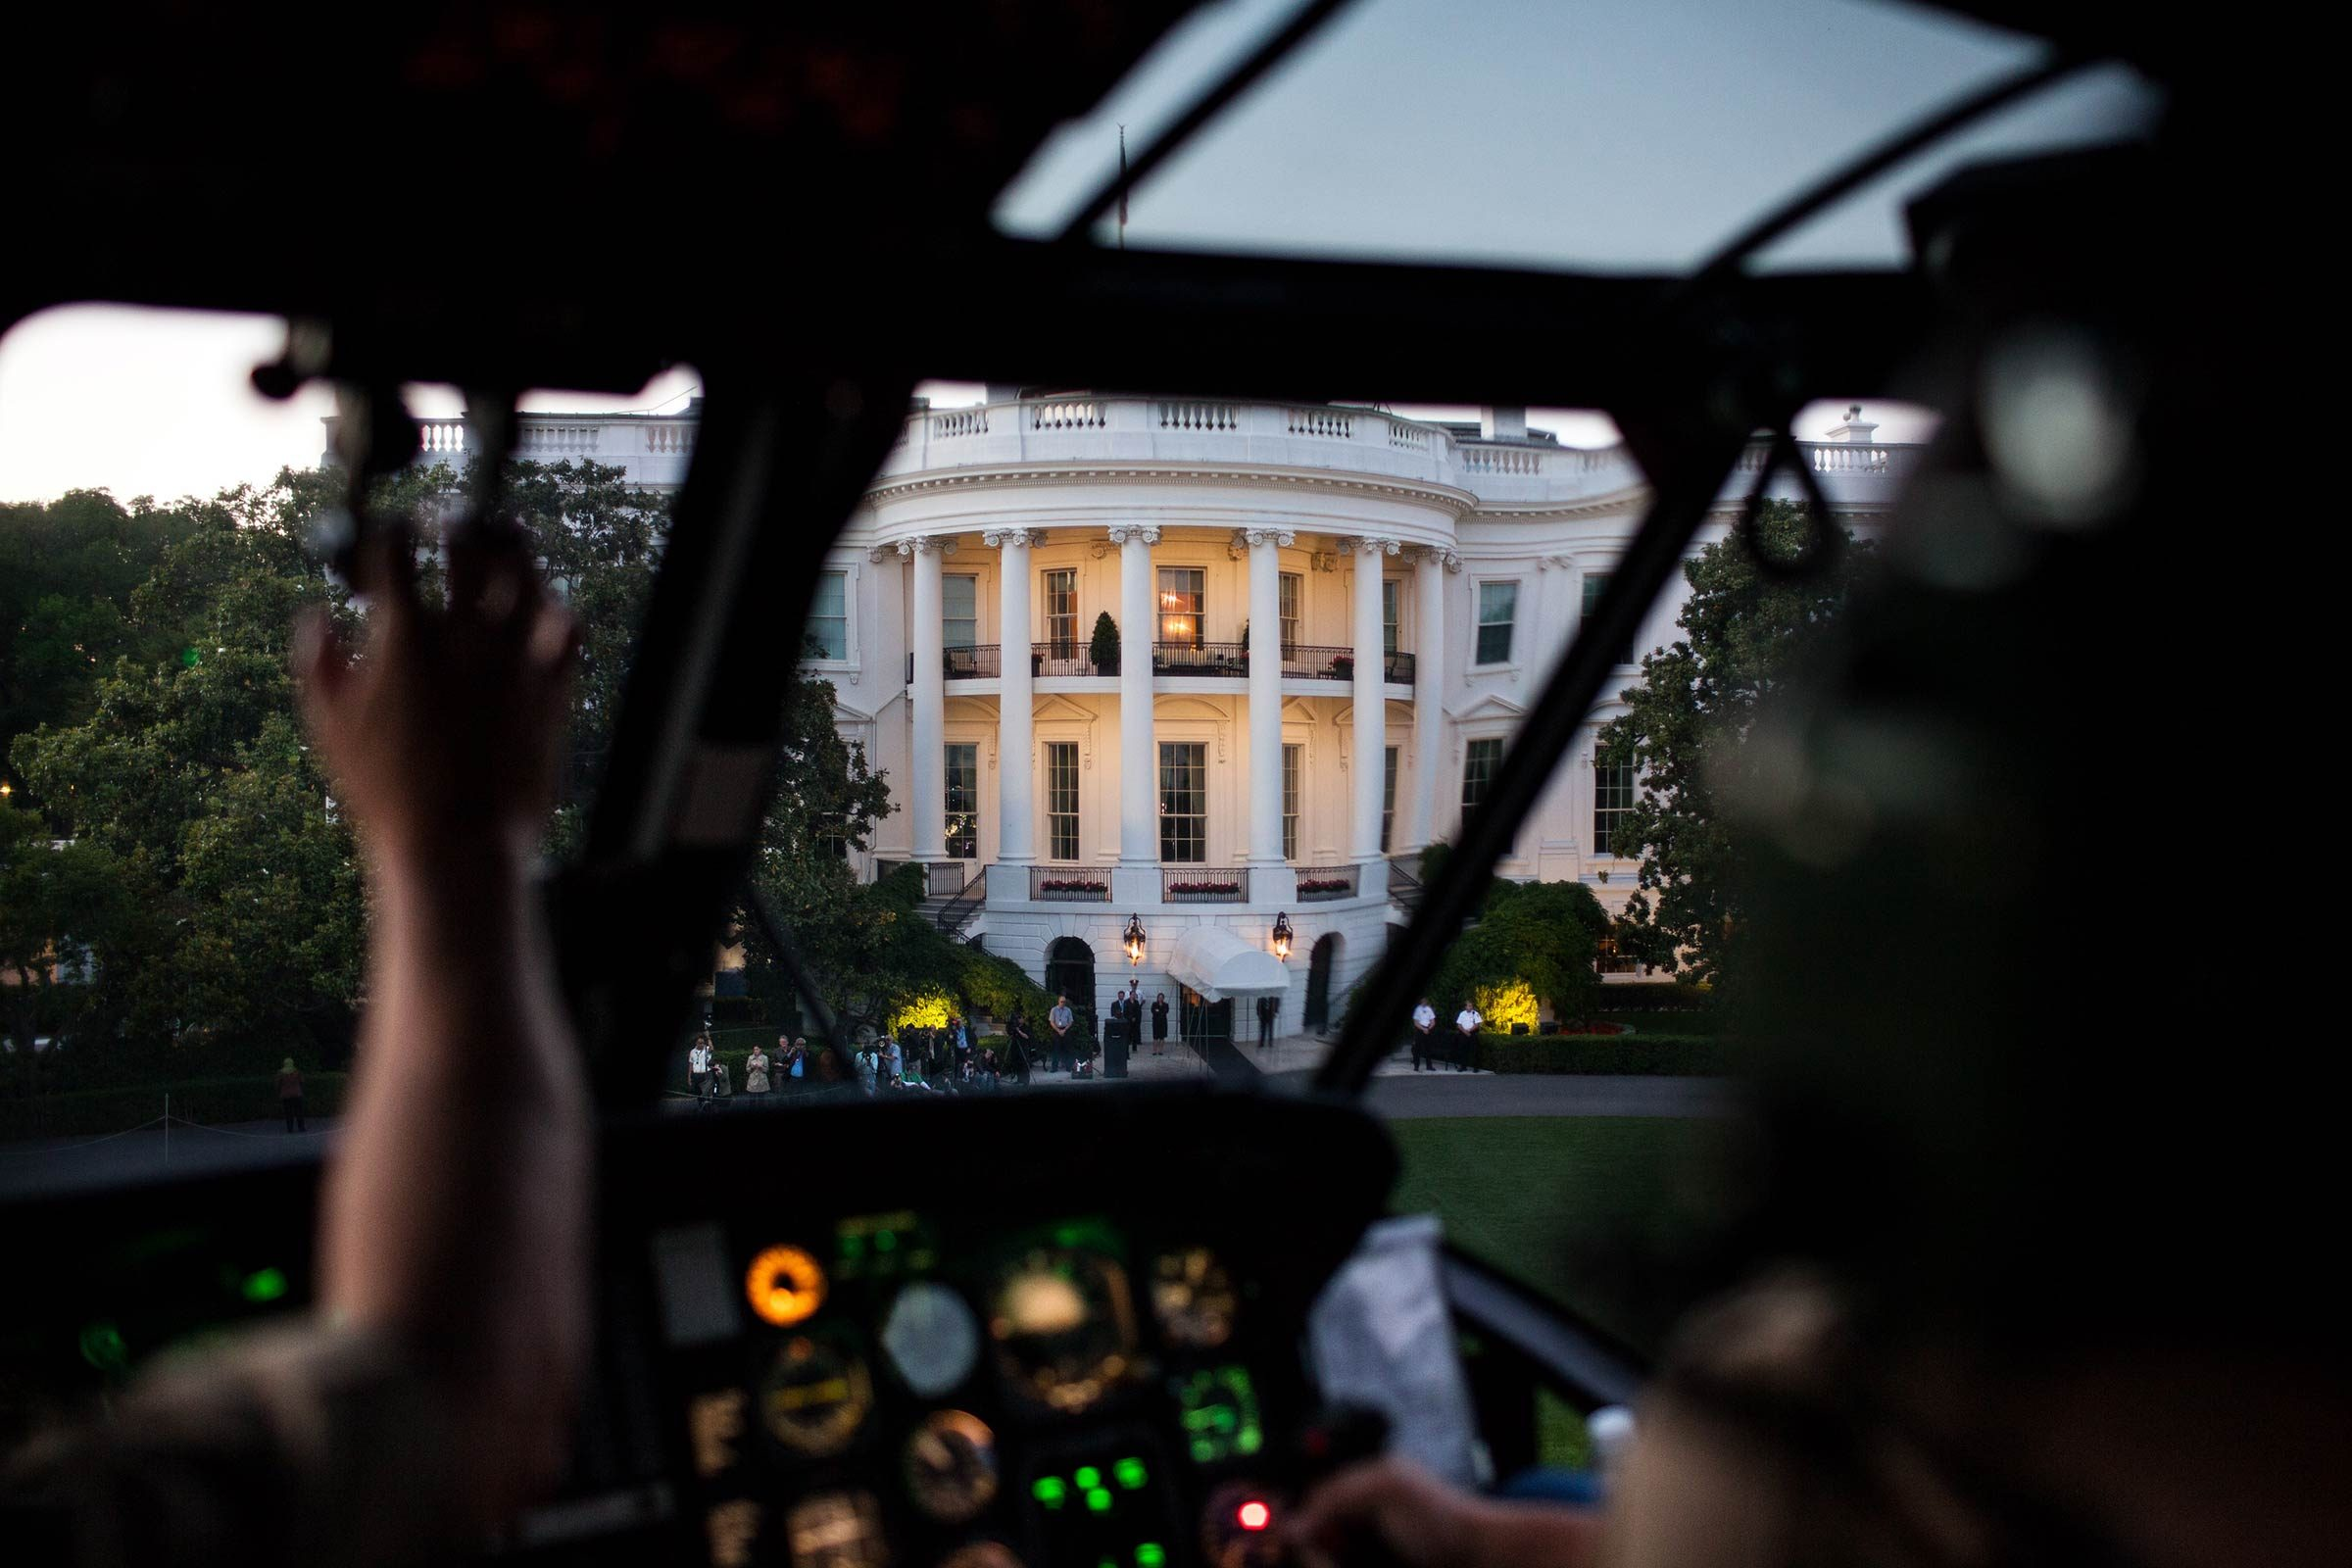 There's a secret command center below the West Wing—or is there?